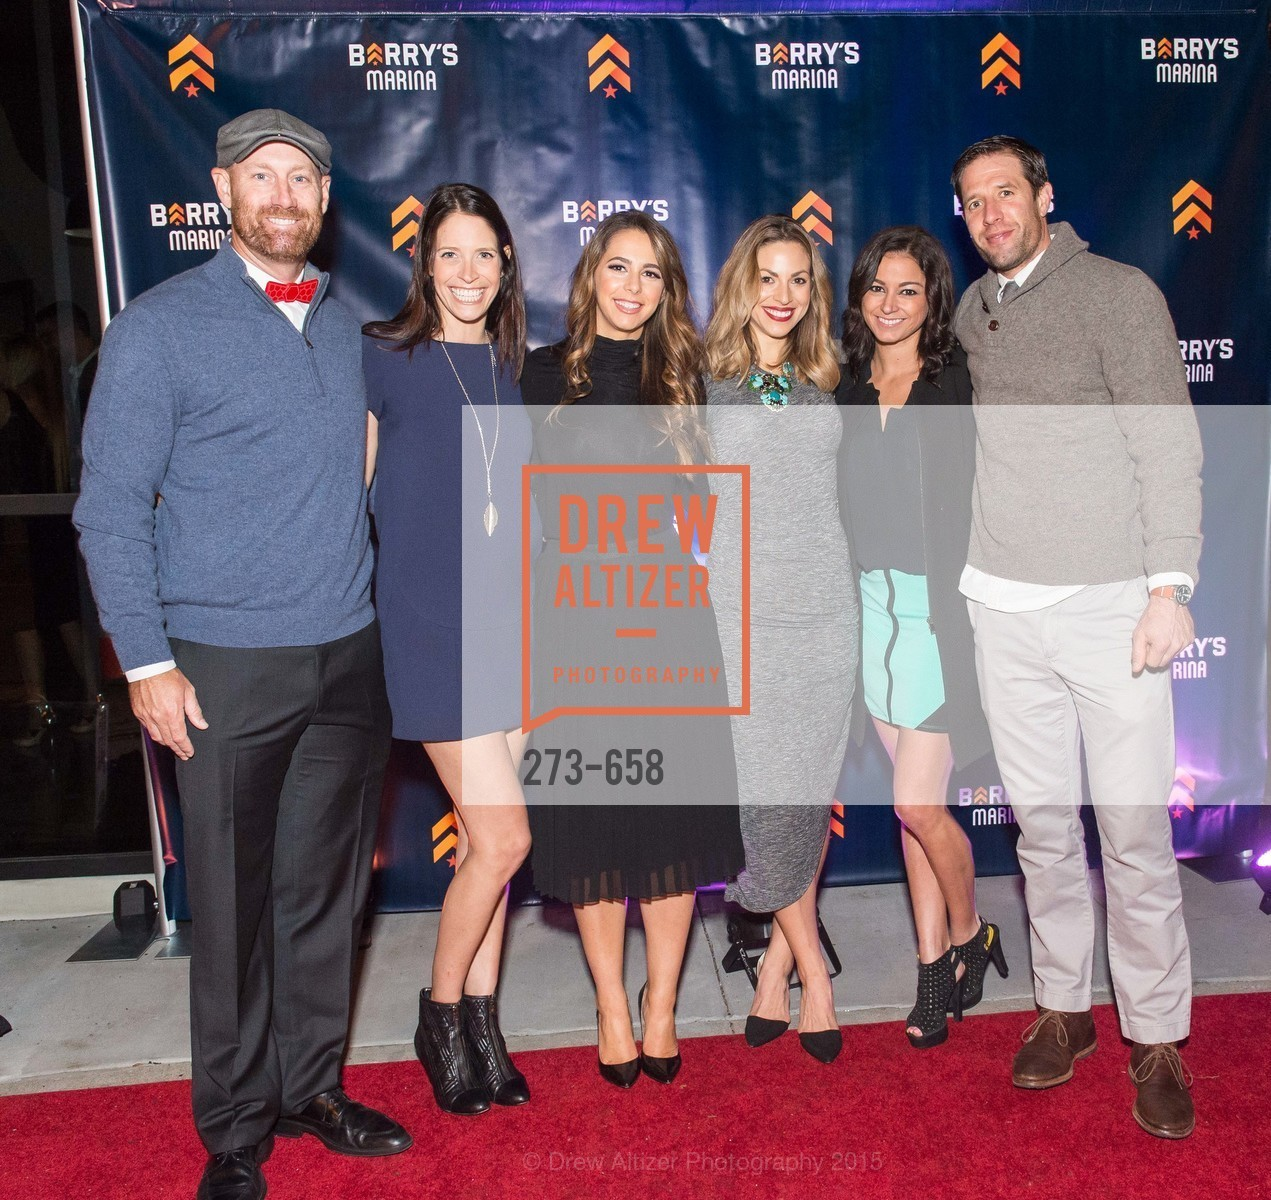 Dan Valine, Kim Spiegelberg, Jessica Bleeker, Rachel Yussim, Kelly Abdelaziz, Sam Yussim, Barry's Marina Opening, Barry's. 2246 Lombard Street, December 17th, 2015,Drew Altizer, Drew Altizer Photography, full-service event agency, private events, San Francisco photographer, photographer California